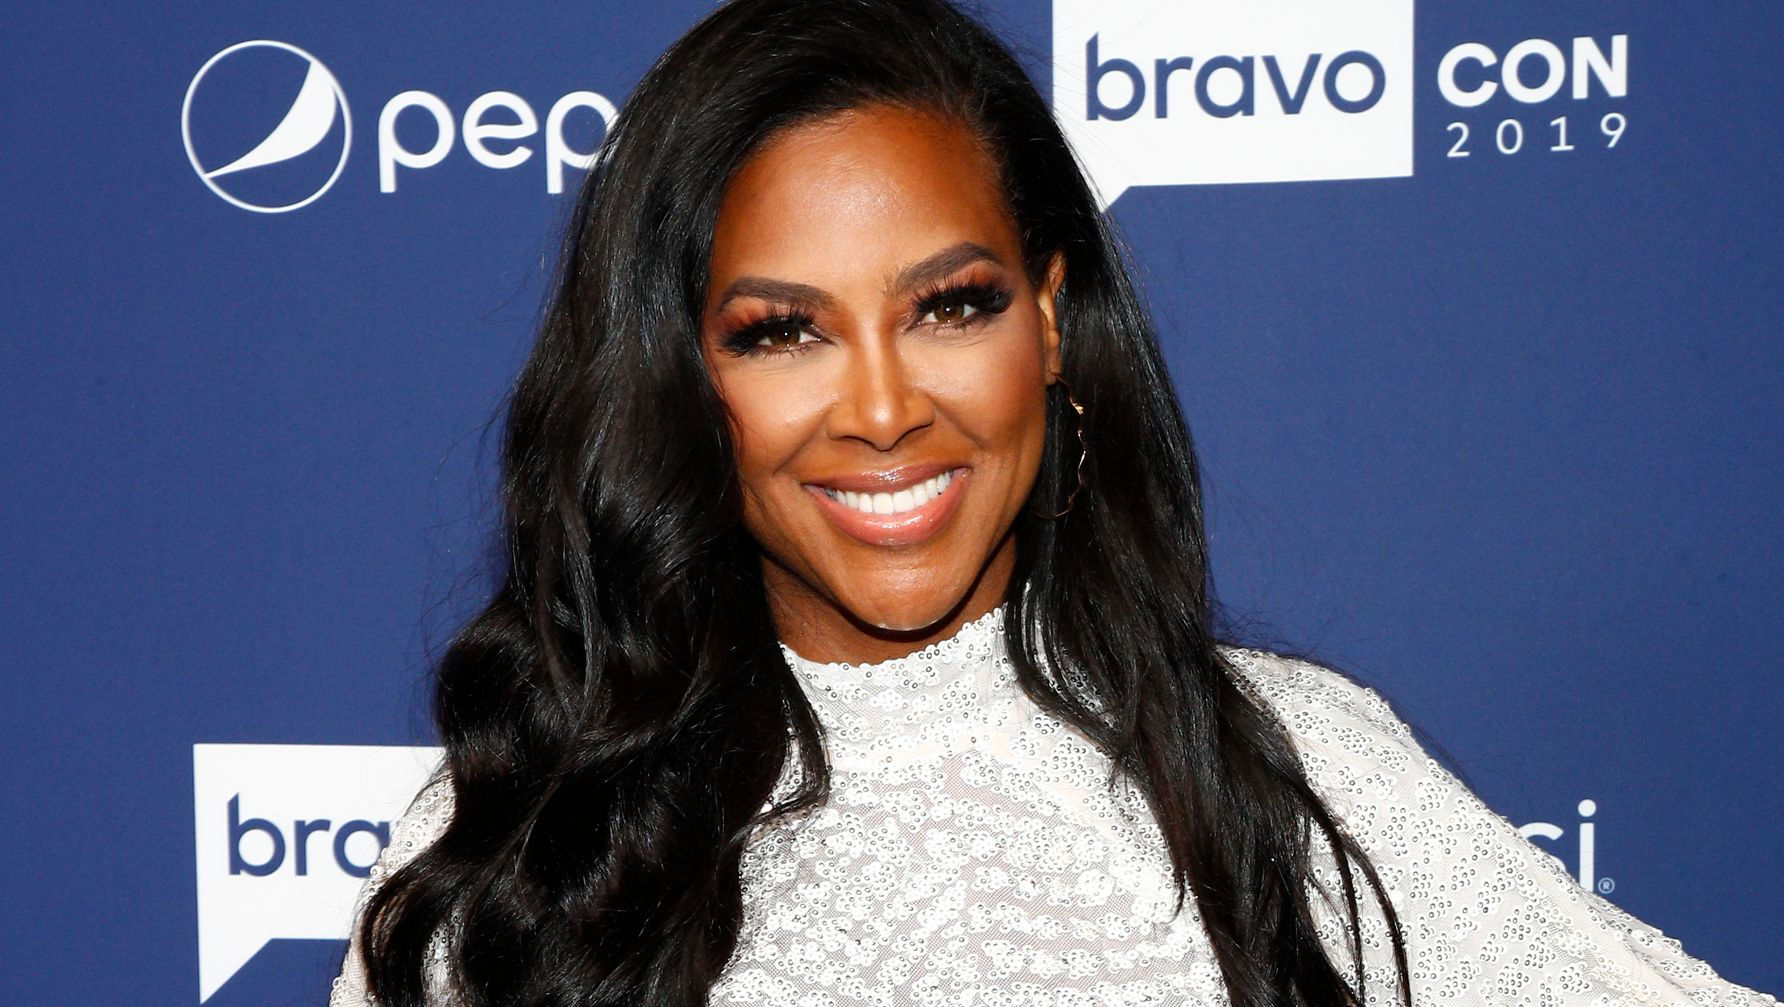 Kenya Moore's 'Siren Vibes' Have Fans Calling Her The Hottest Housewife - See Her Latest Photo